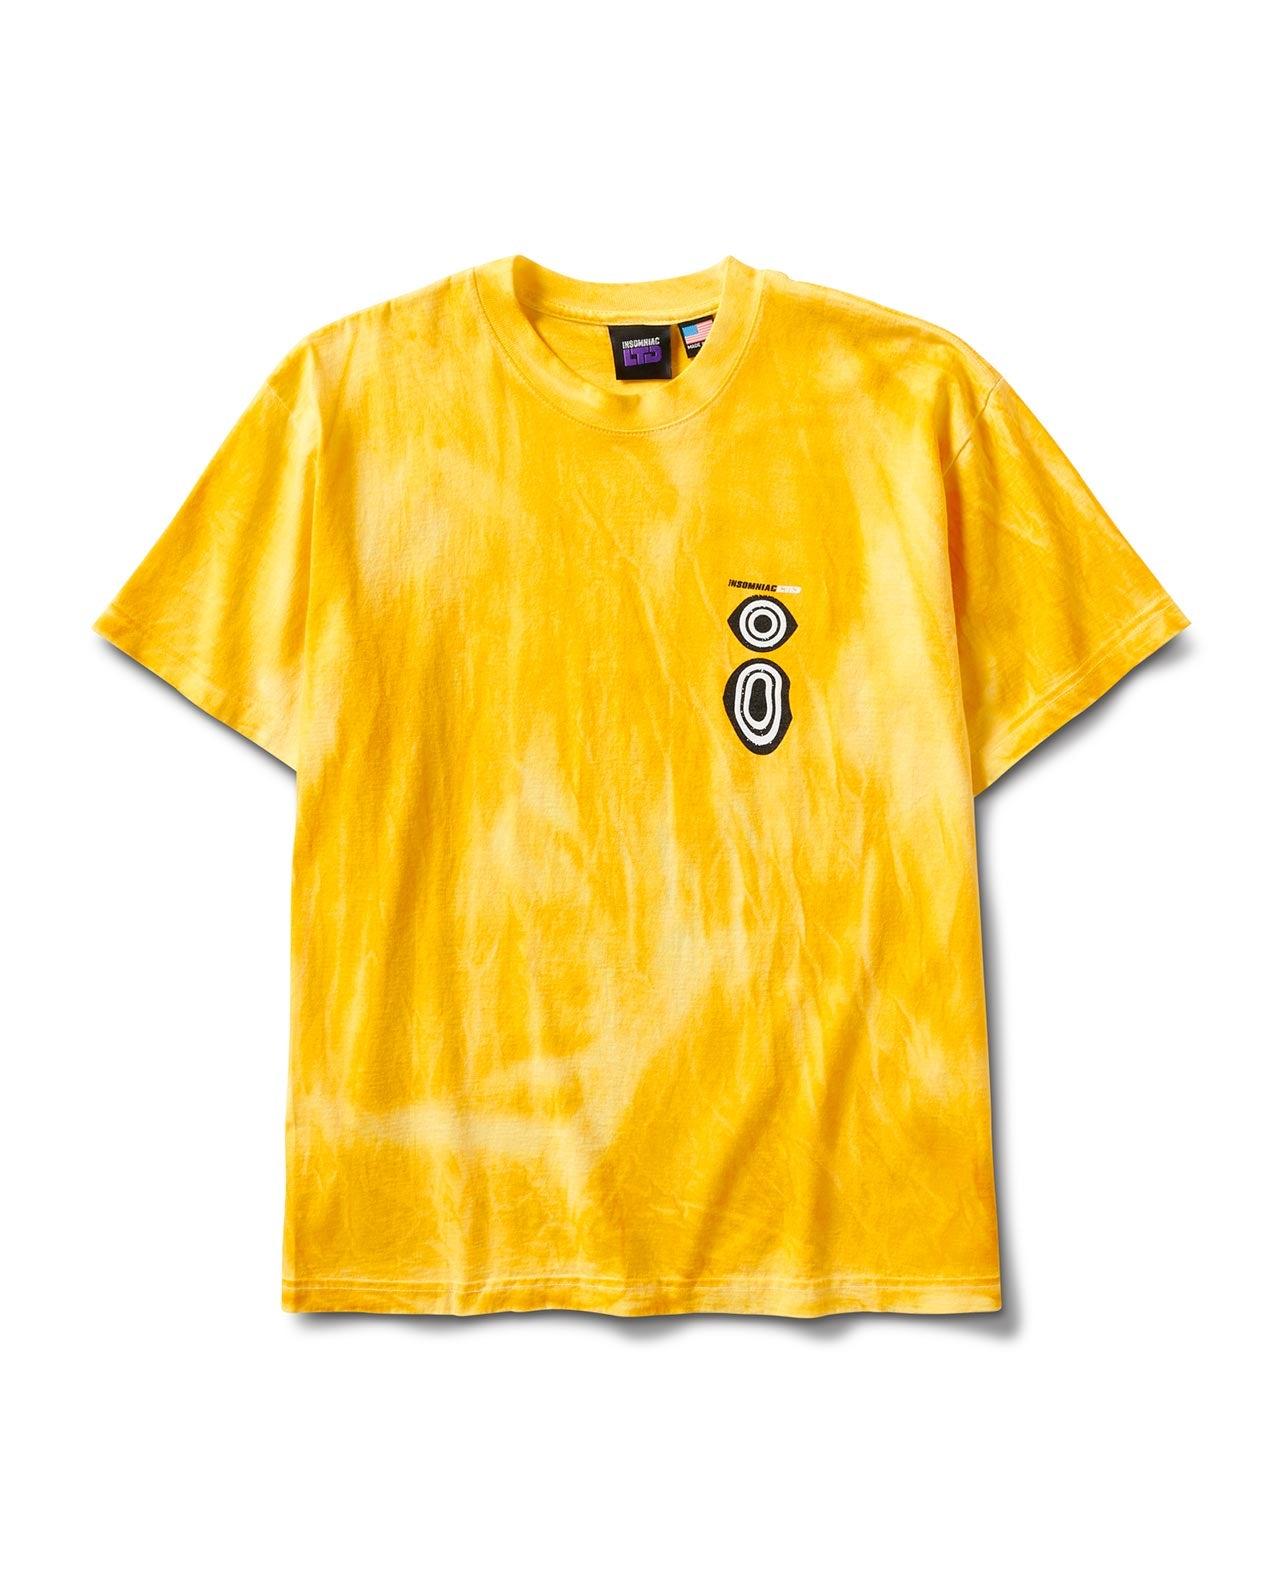 Meltdown S/S Tee Yellow